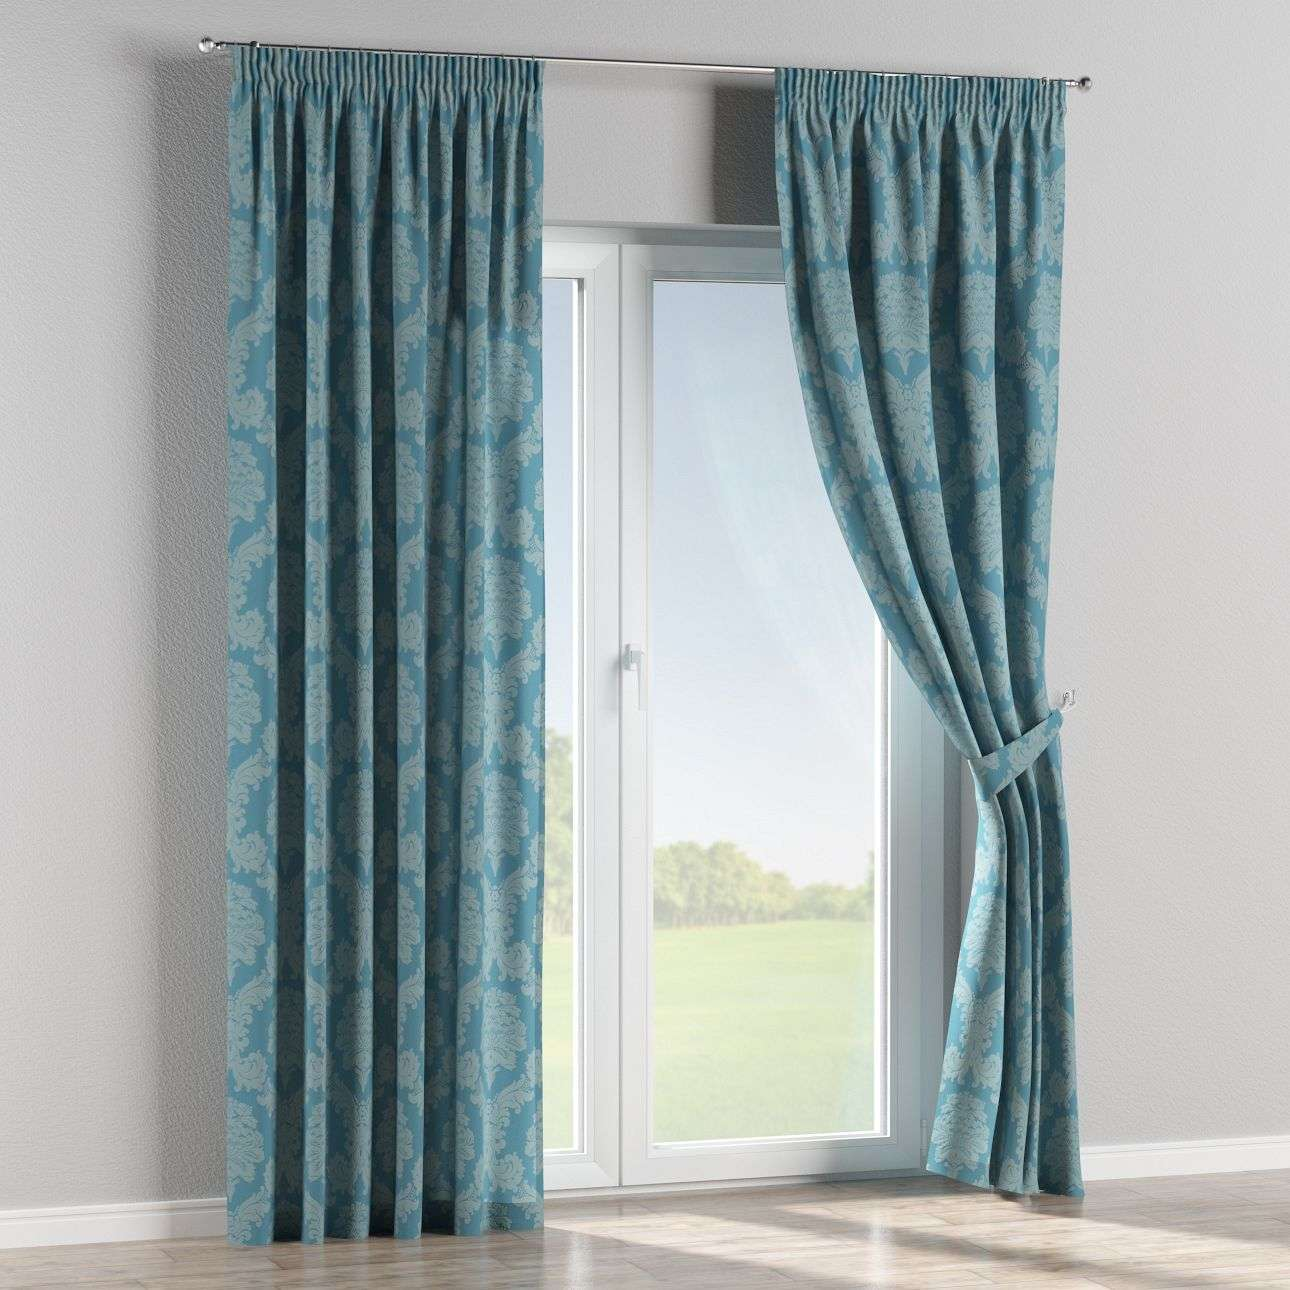 Pencil pleat curtains in collection Damasco, fabric: 613-67